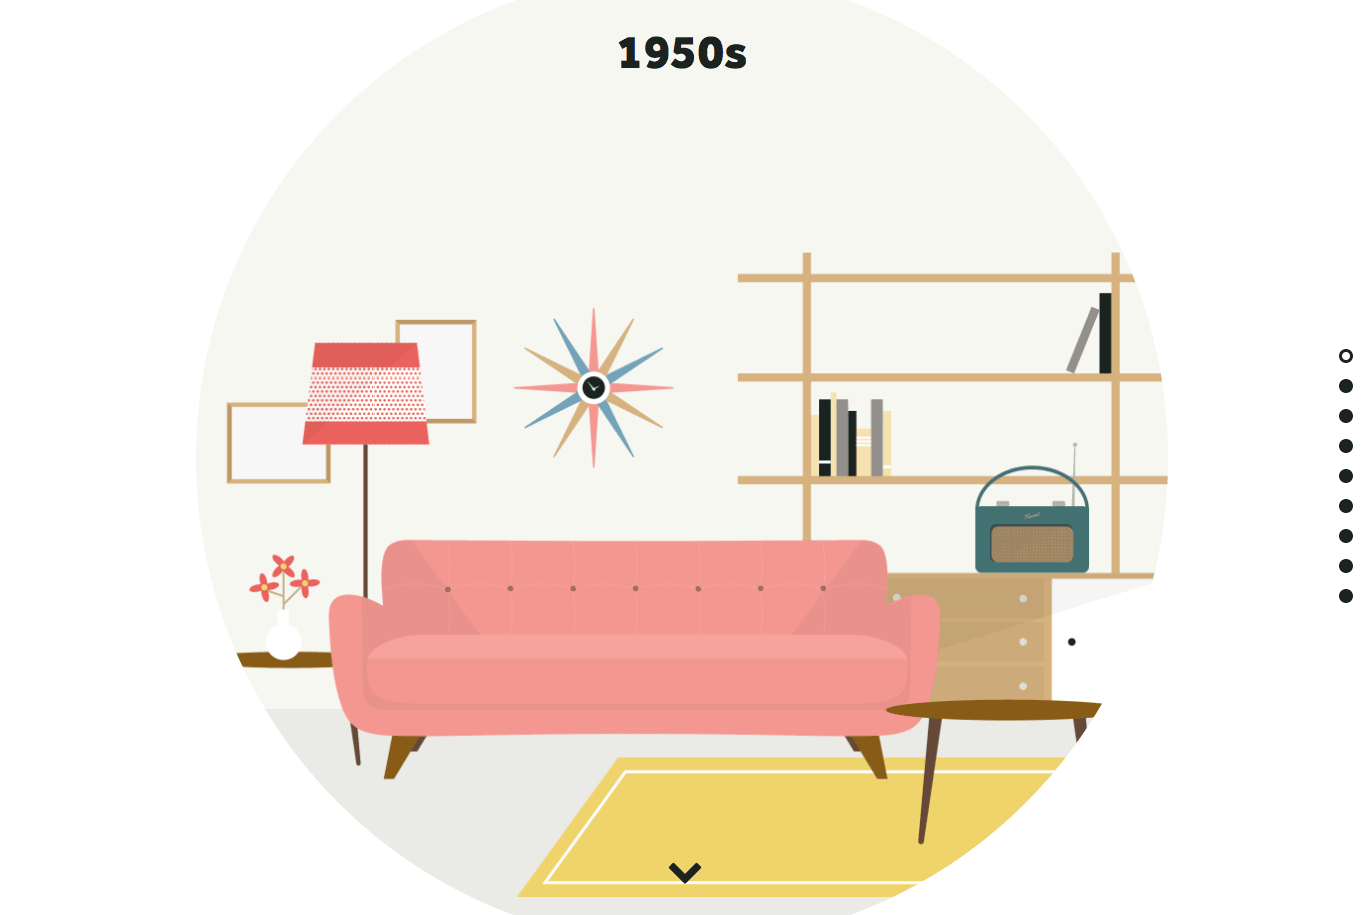 The Harvey Water Softeners website looks back at interior design over the past 70 years.